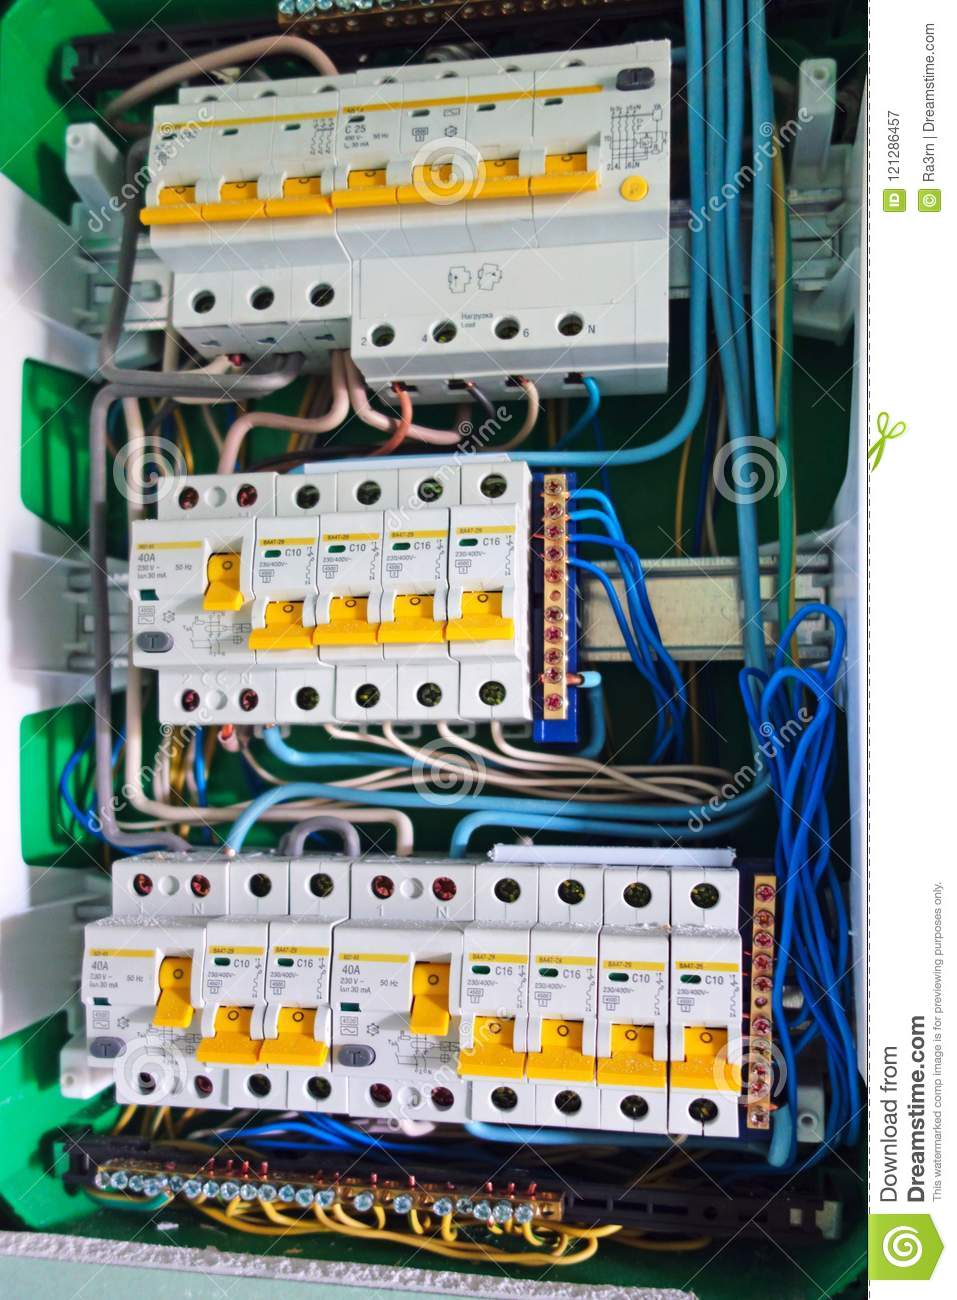 medium resolution of electric board with circuit breakers circuit breaker used on items such as a residential iron hot water heater a kitchen oven or an electric clothes